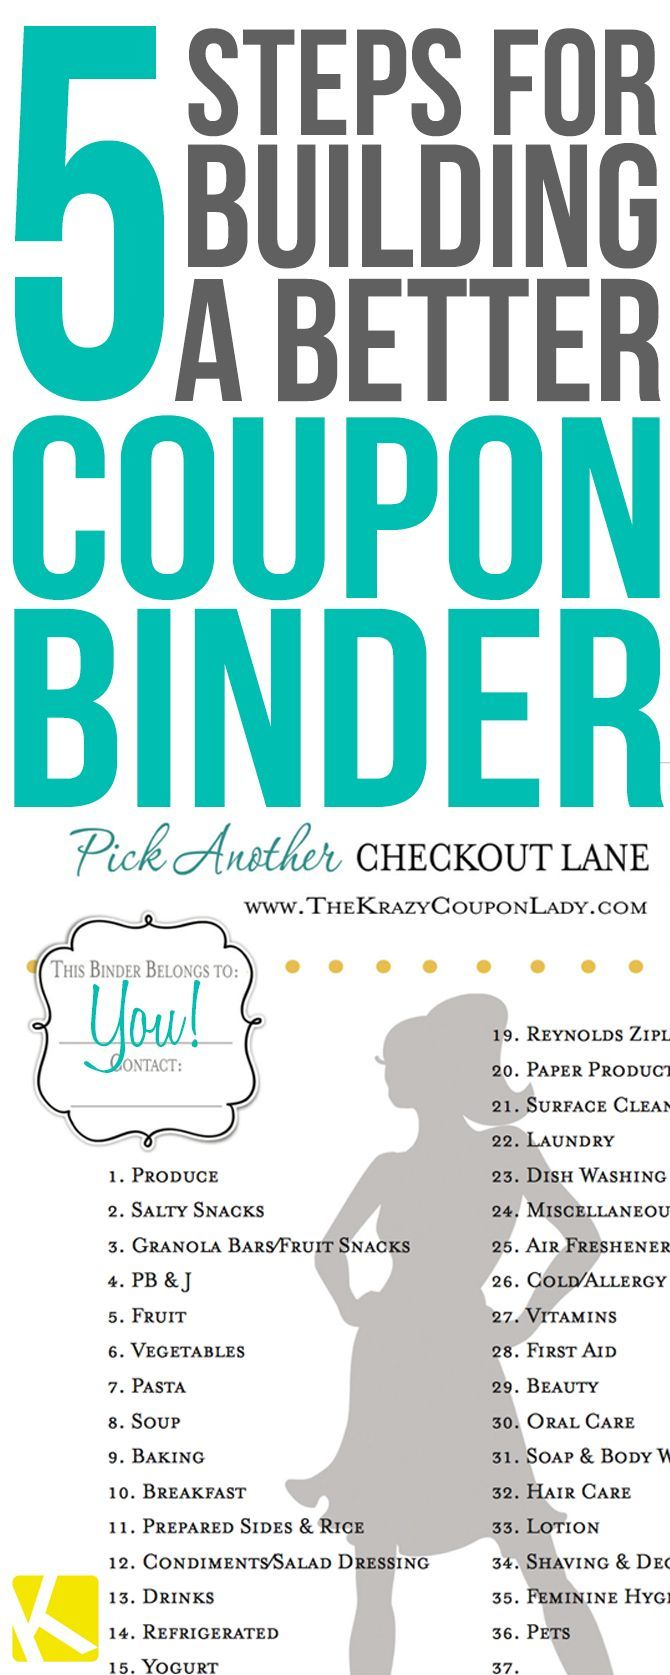 Coupon master clipping service - 5 Easy Steps To Create And Maintain Your Coupon Binder